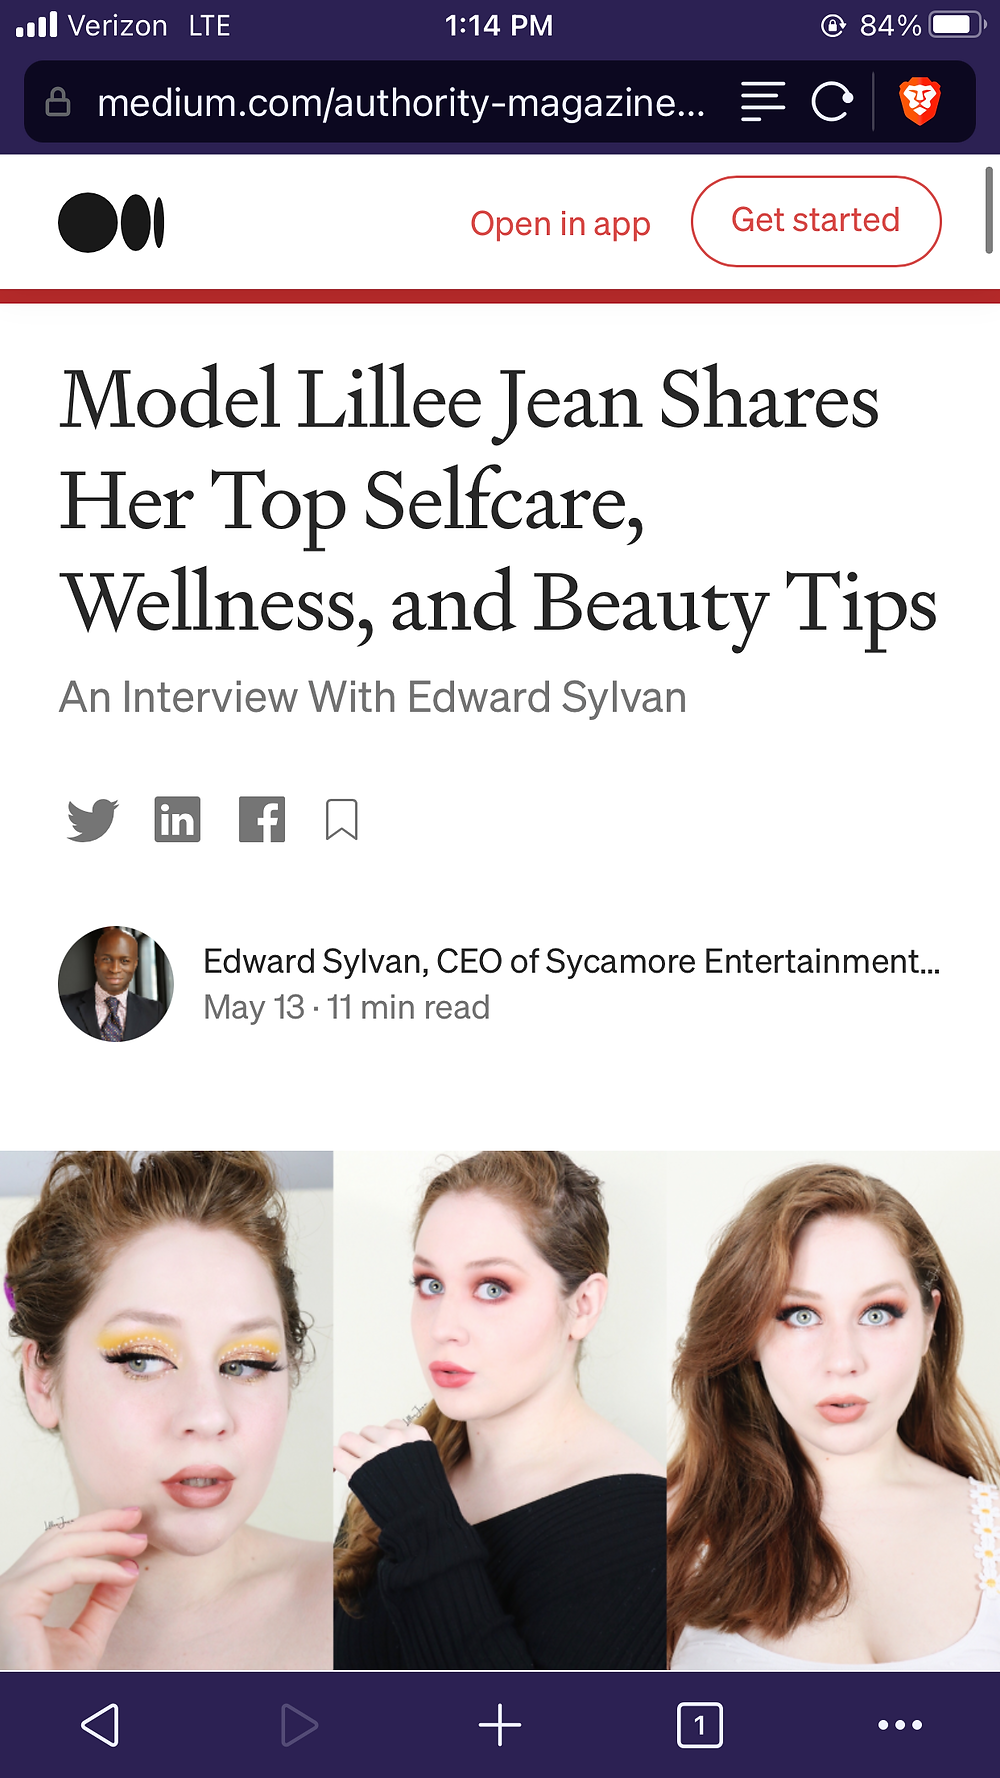 Model Lillee Jean Shares Her Top Selfcare, Wellness, and Beauty Tips